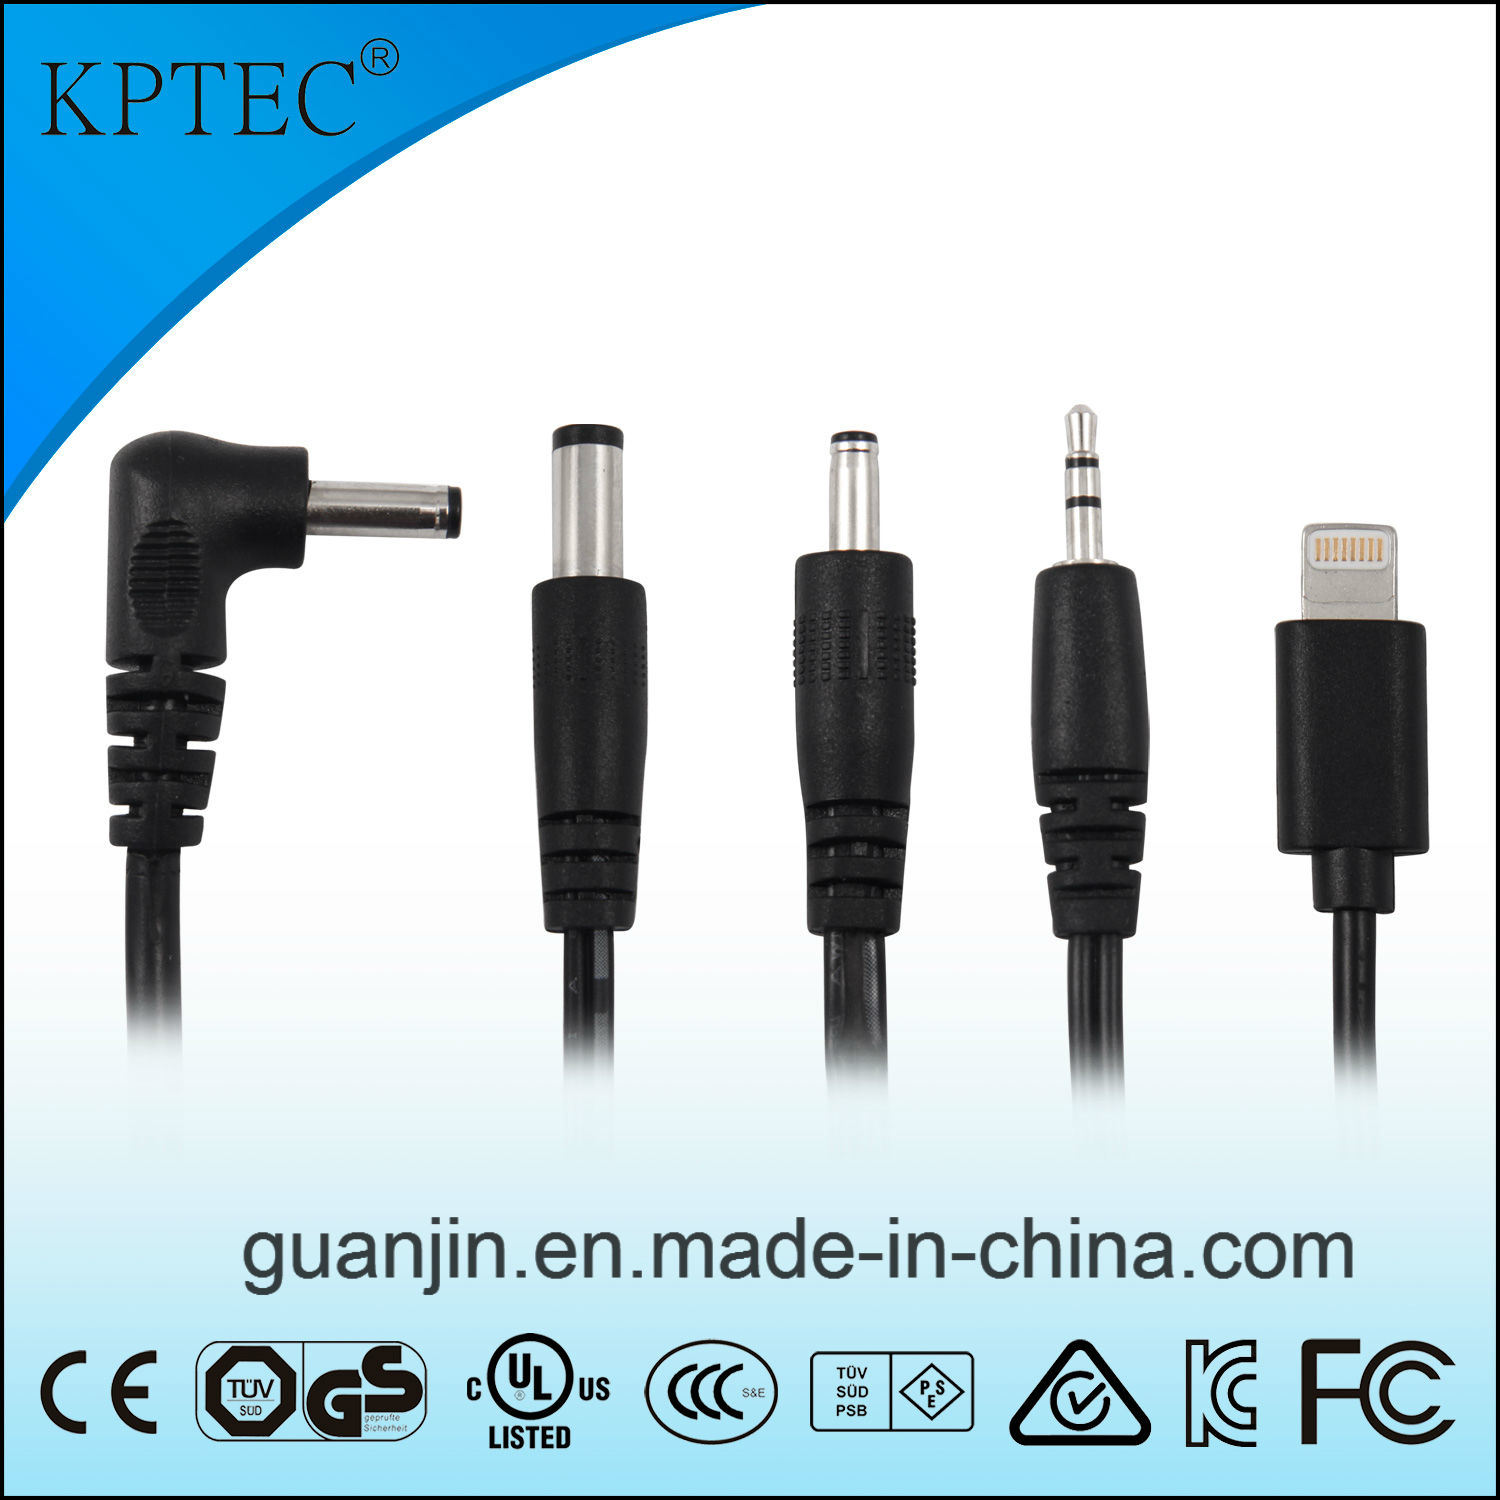 5V 1A USB Charger for Small Home Appliance Product